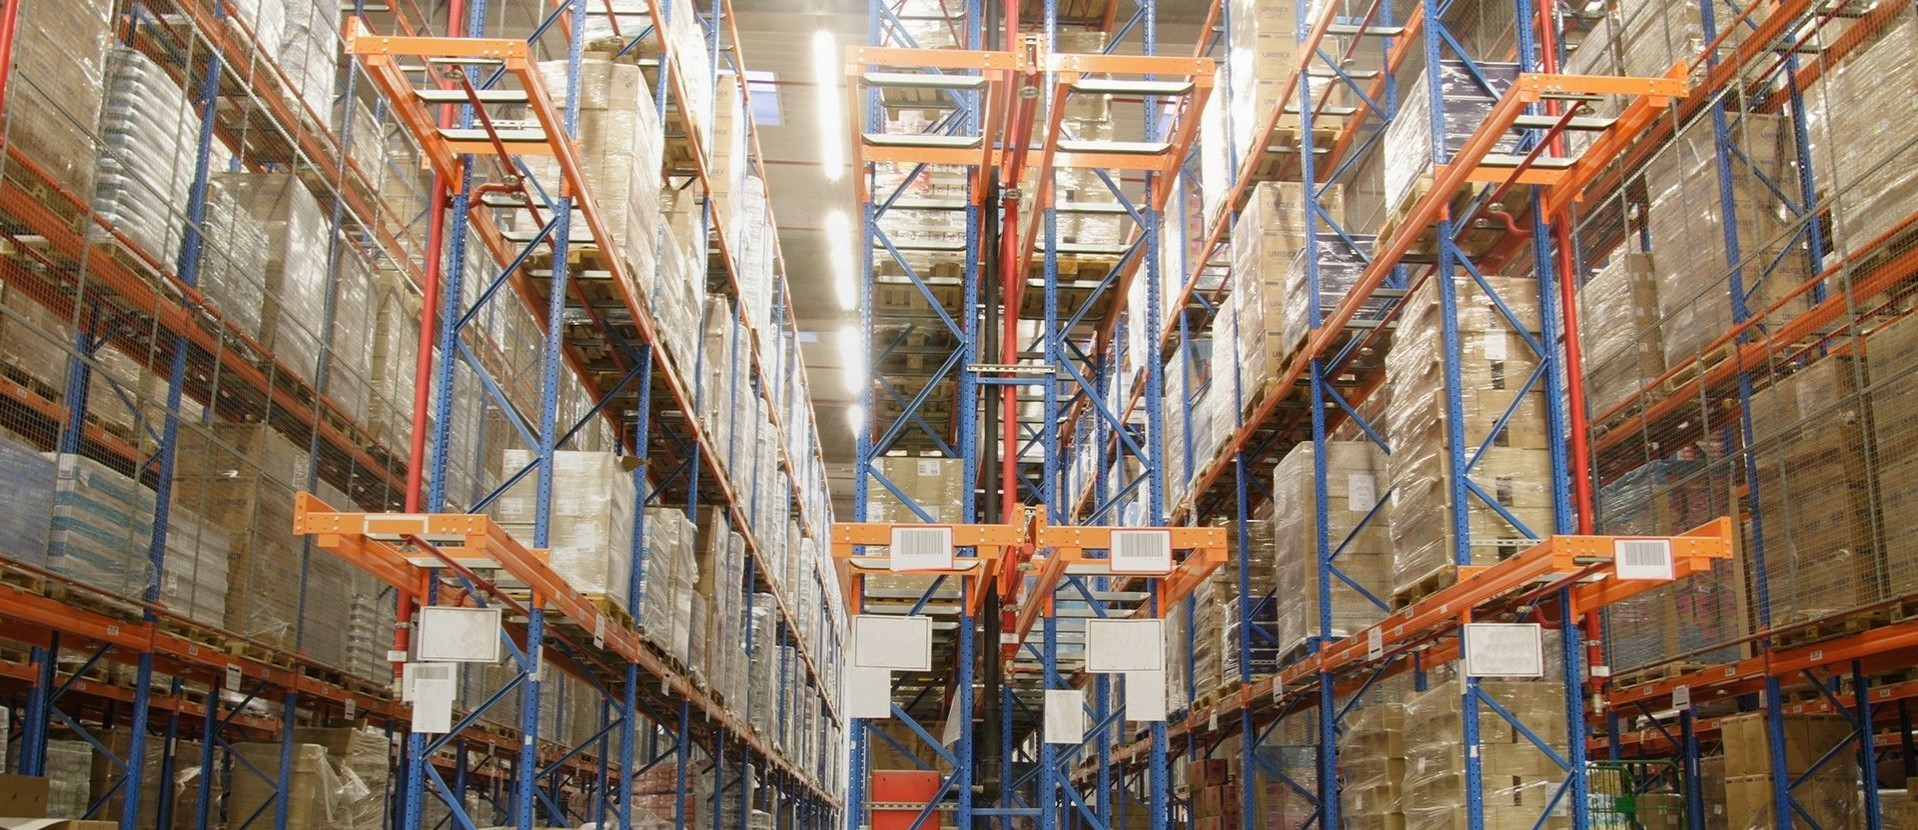 Lighting for industrial and warehouse areas